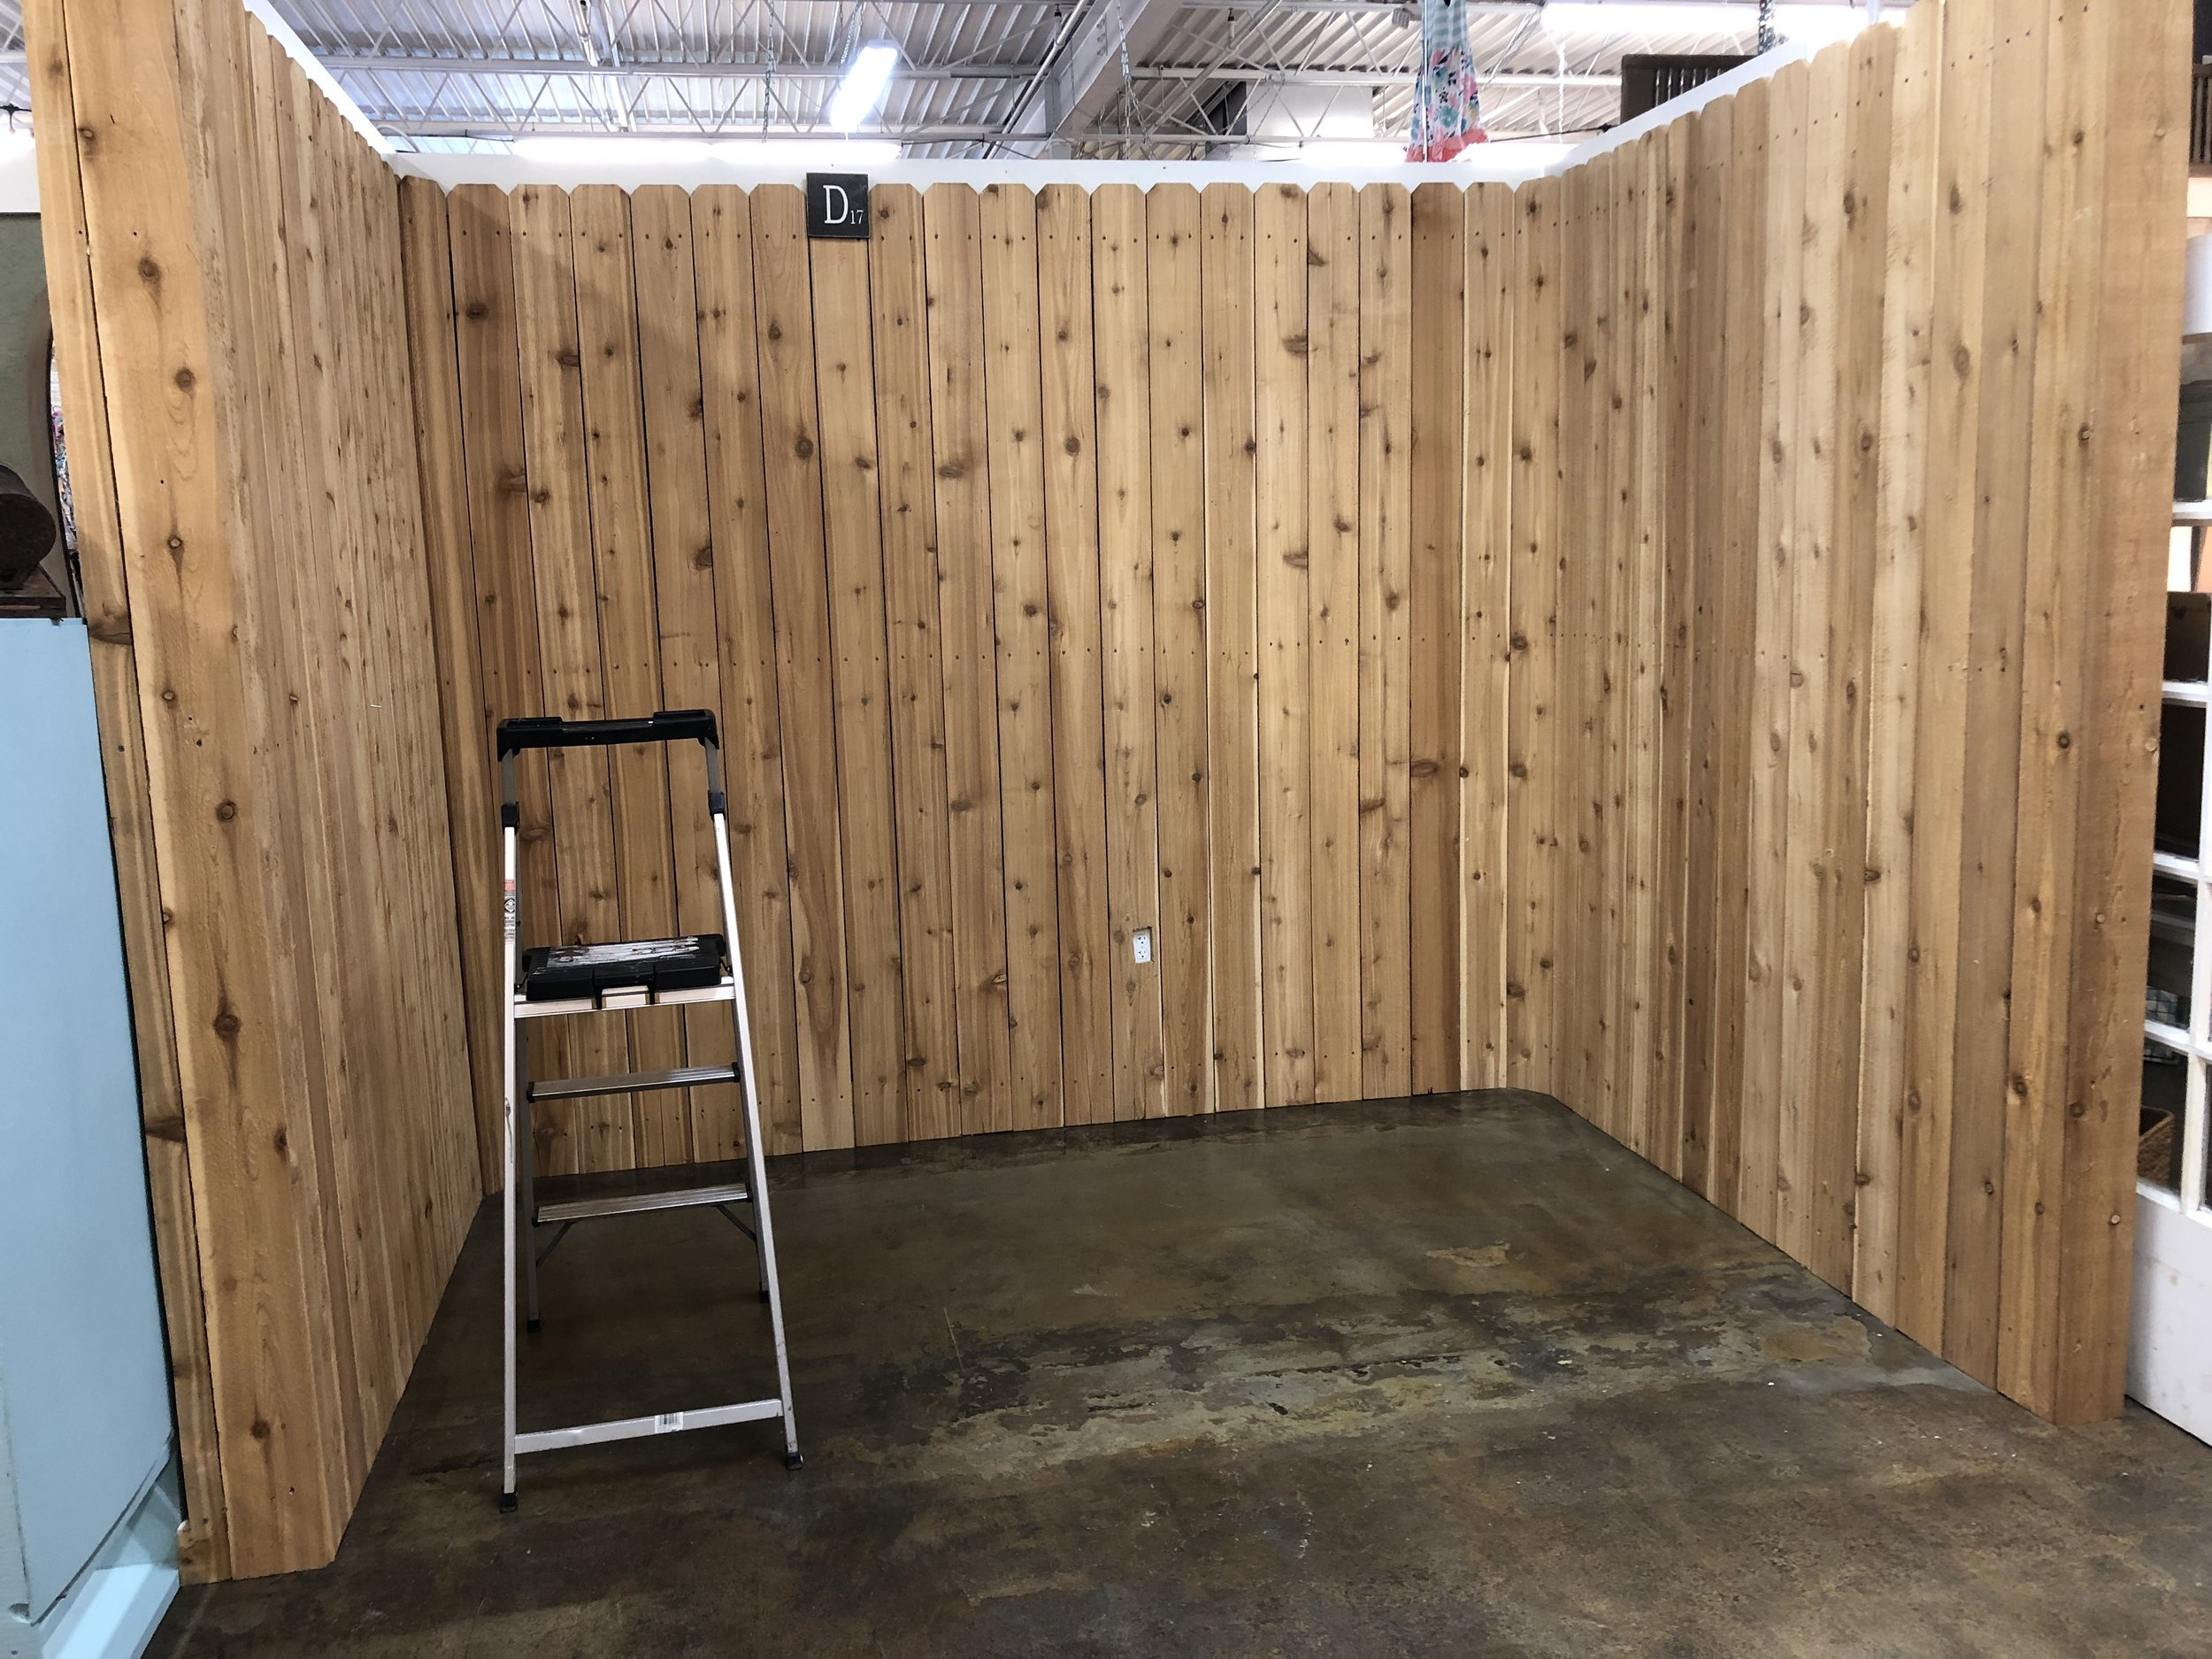 I'm not sure how I feel about the fence boards. They were left by the old owner of this booth. The good news is Painted Tree let's you customize your space so I can change it! The bad news is that I don't have time to change it at the moment.